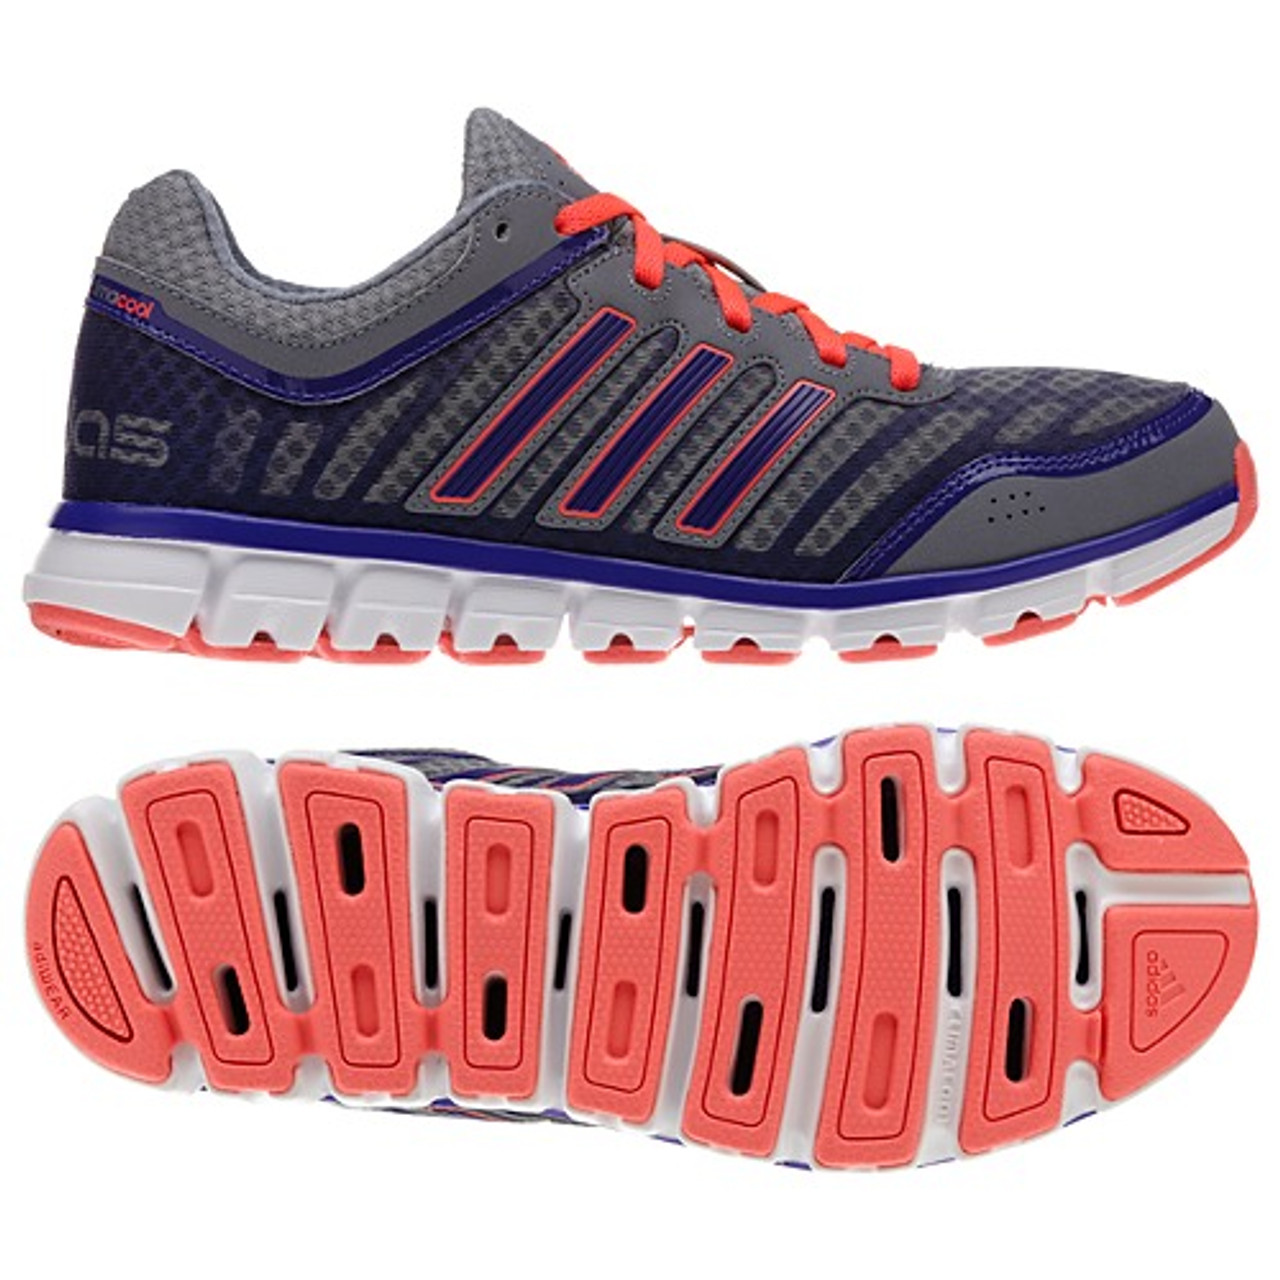 info for af1e2 04db8 Adidas ClimaCool Aerate 2 Grey/Red Zest Ladies Running Shoes